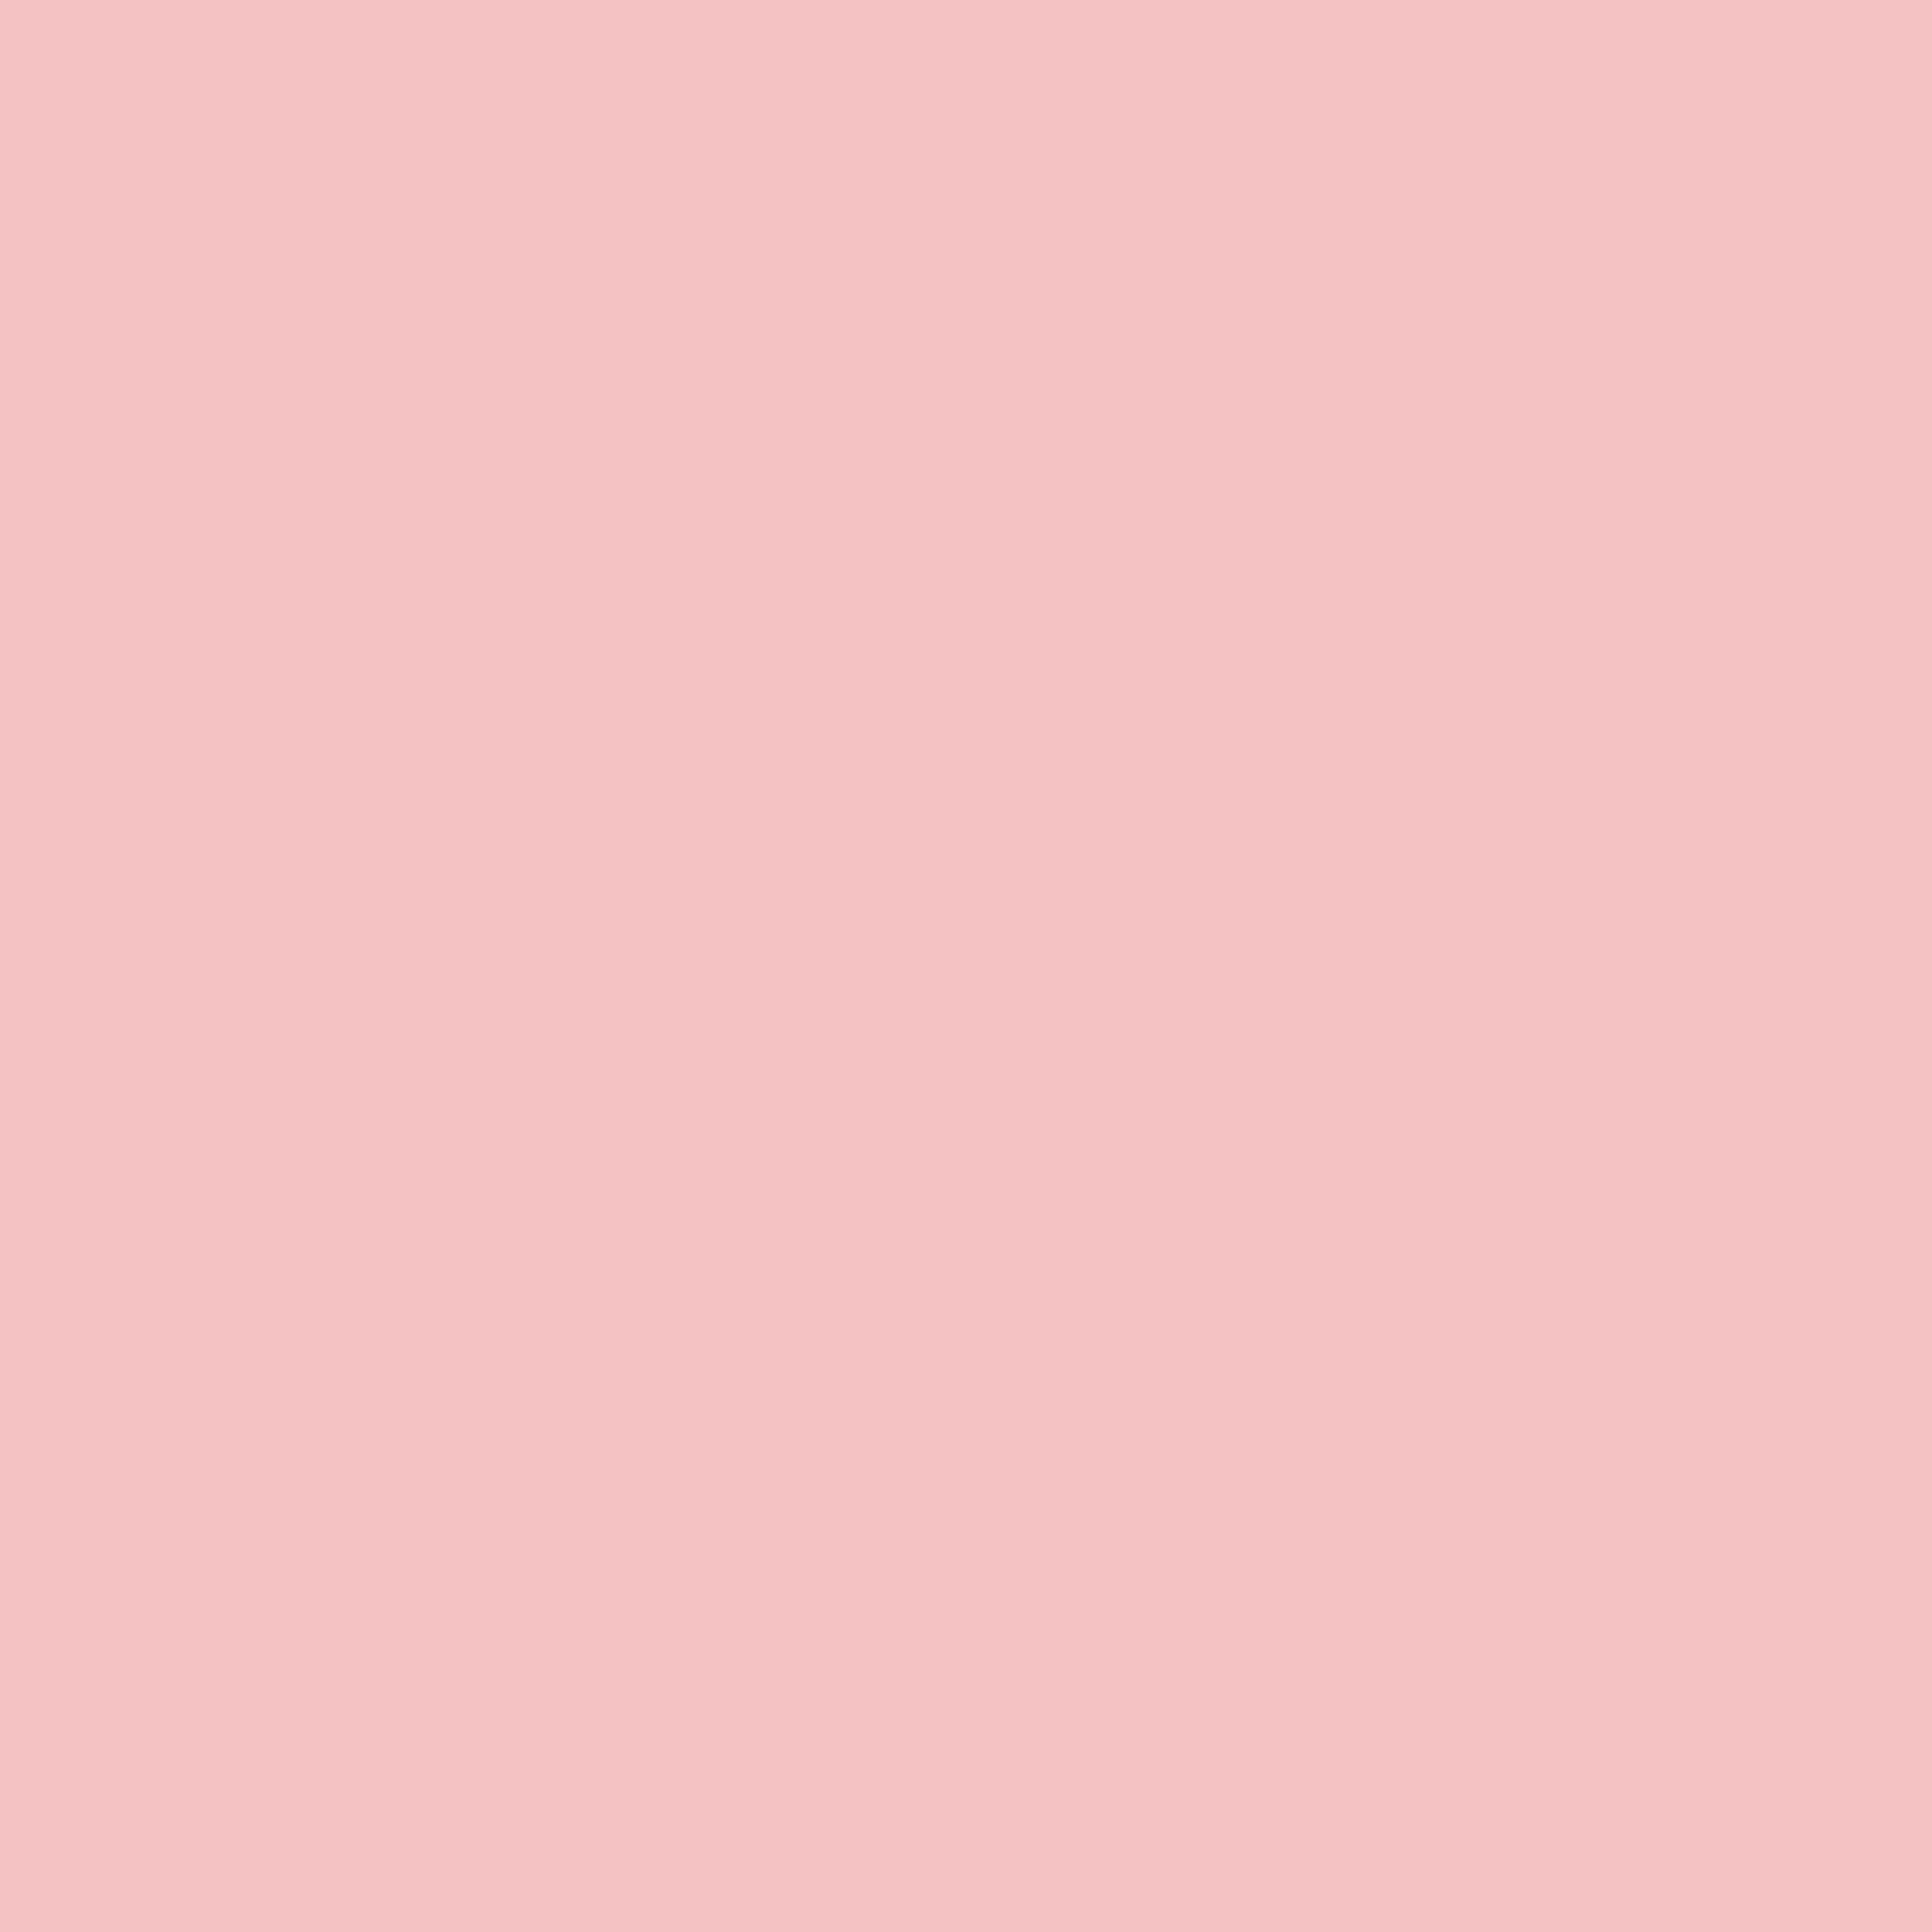 2048x2048 Baby Pink Solid Color Background